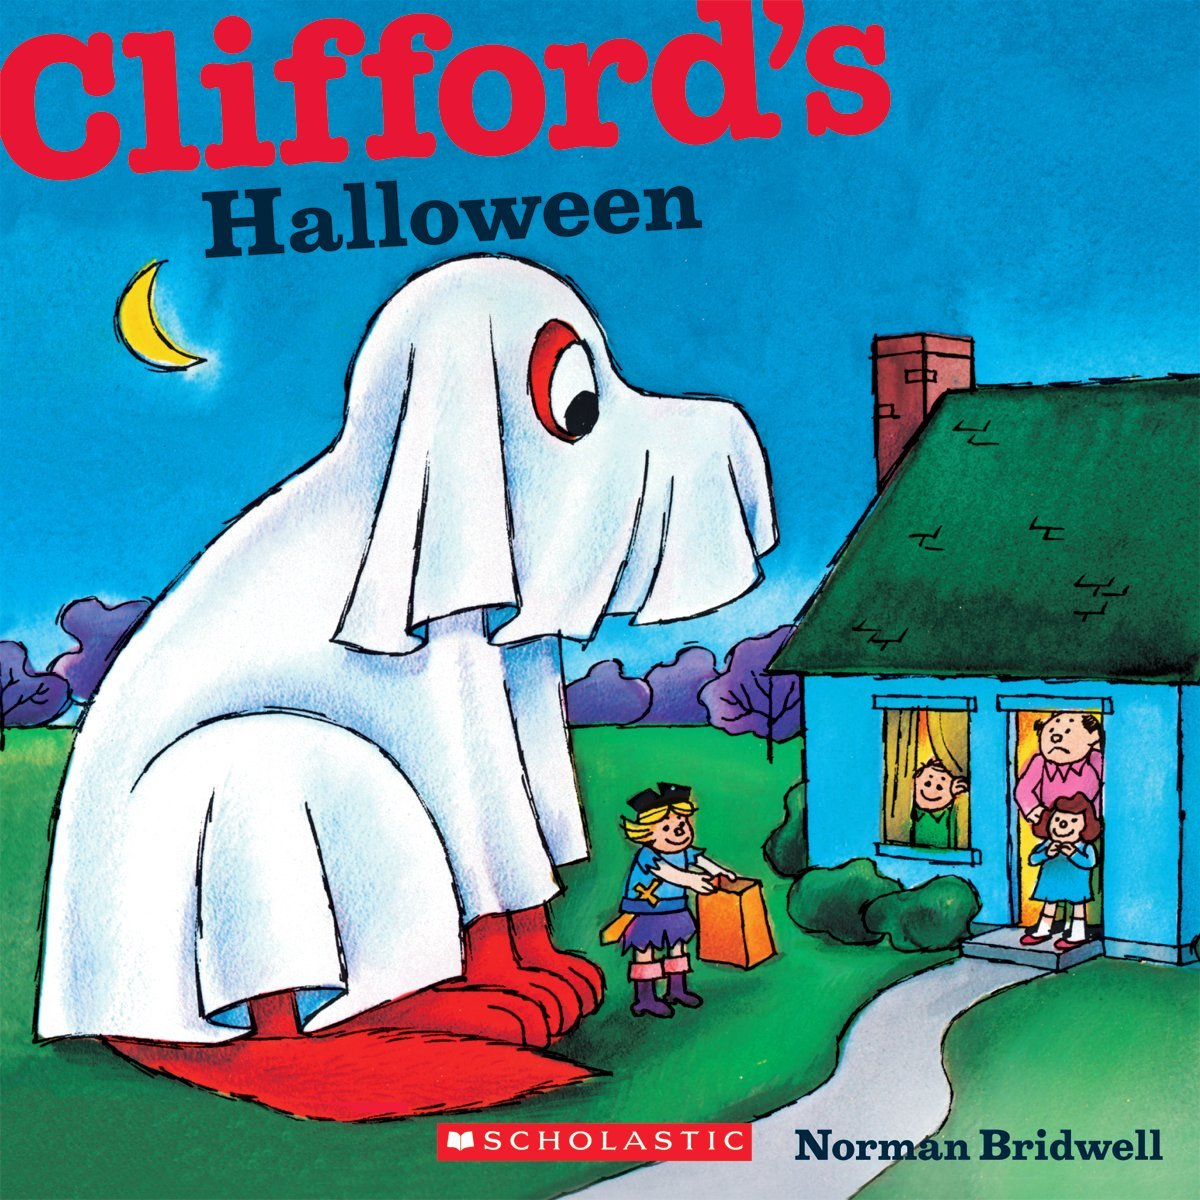 Have fun with Clifford the big red dog in Clifford's Halloween.